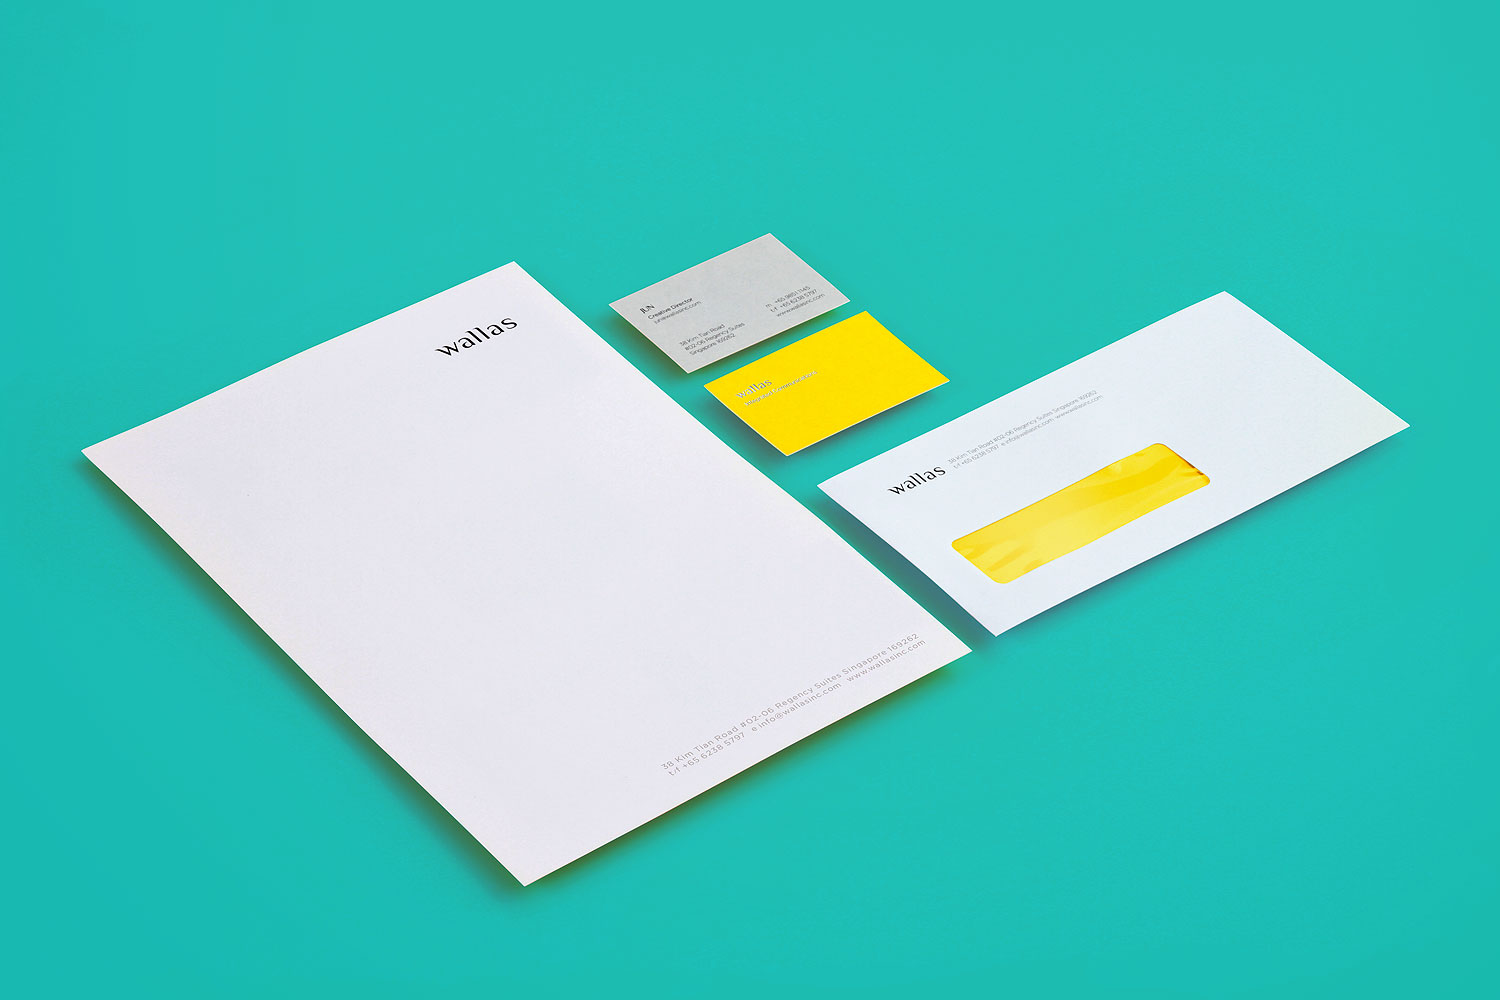 Branding identity design for Wallas Inc, an integrated agency in SG - Corporate identity stationery design by Singapore based brand strategy and creative design consultancy, BÜRO UFHO.